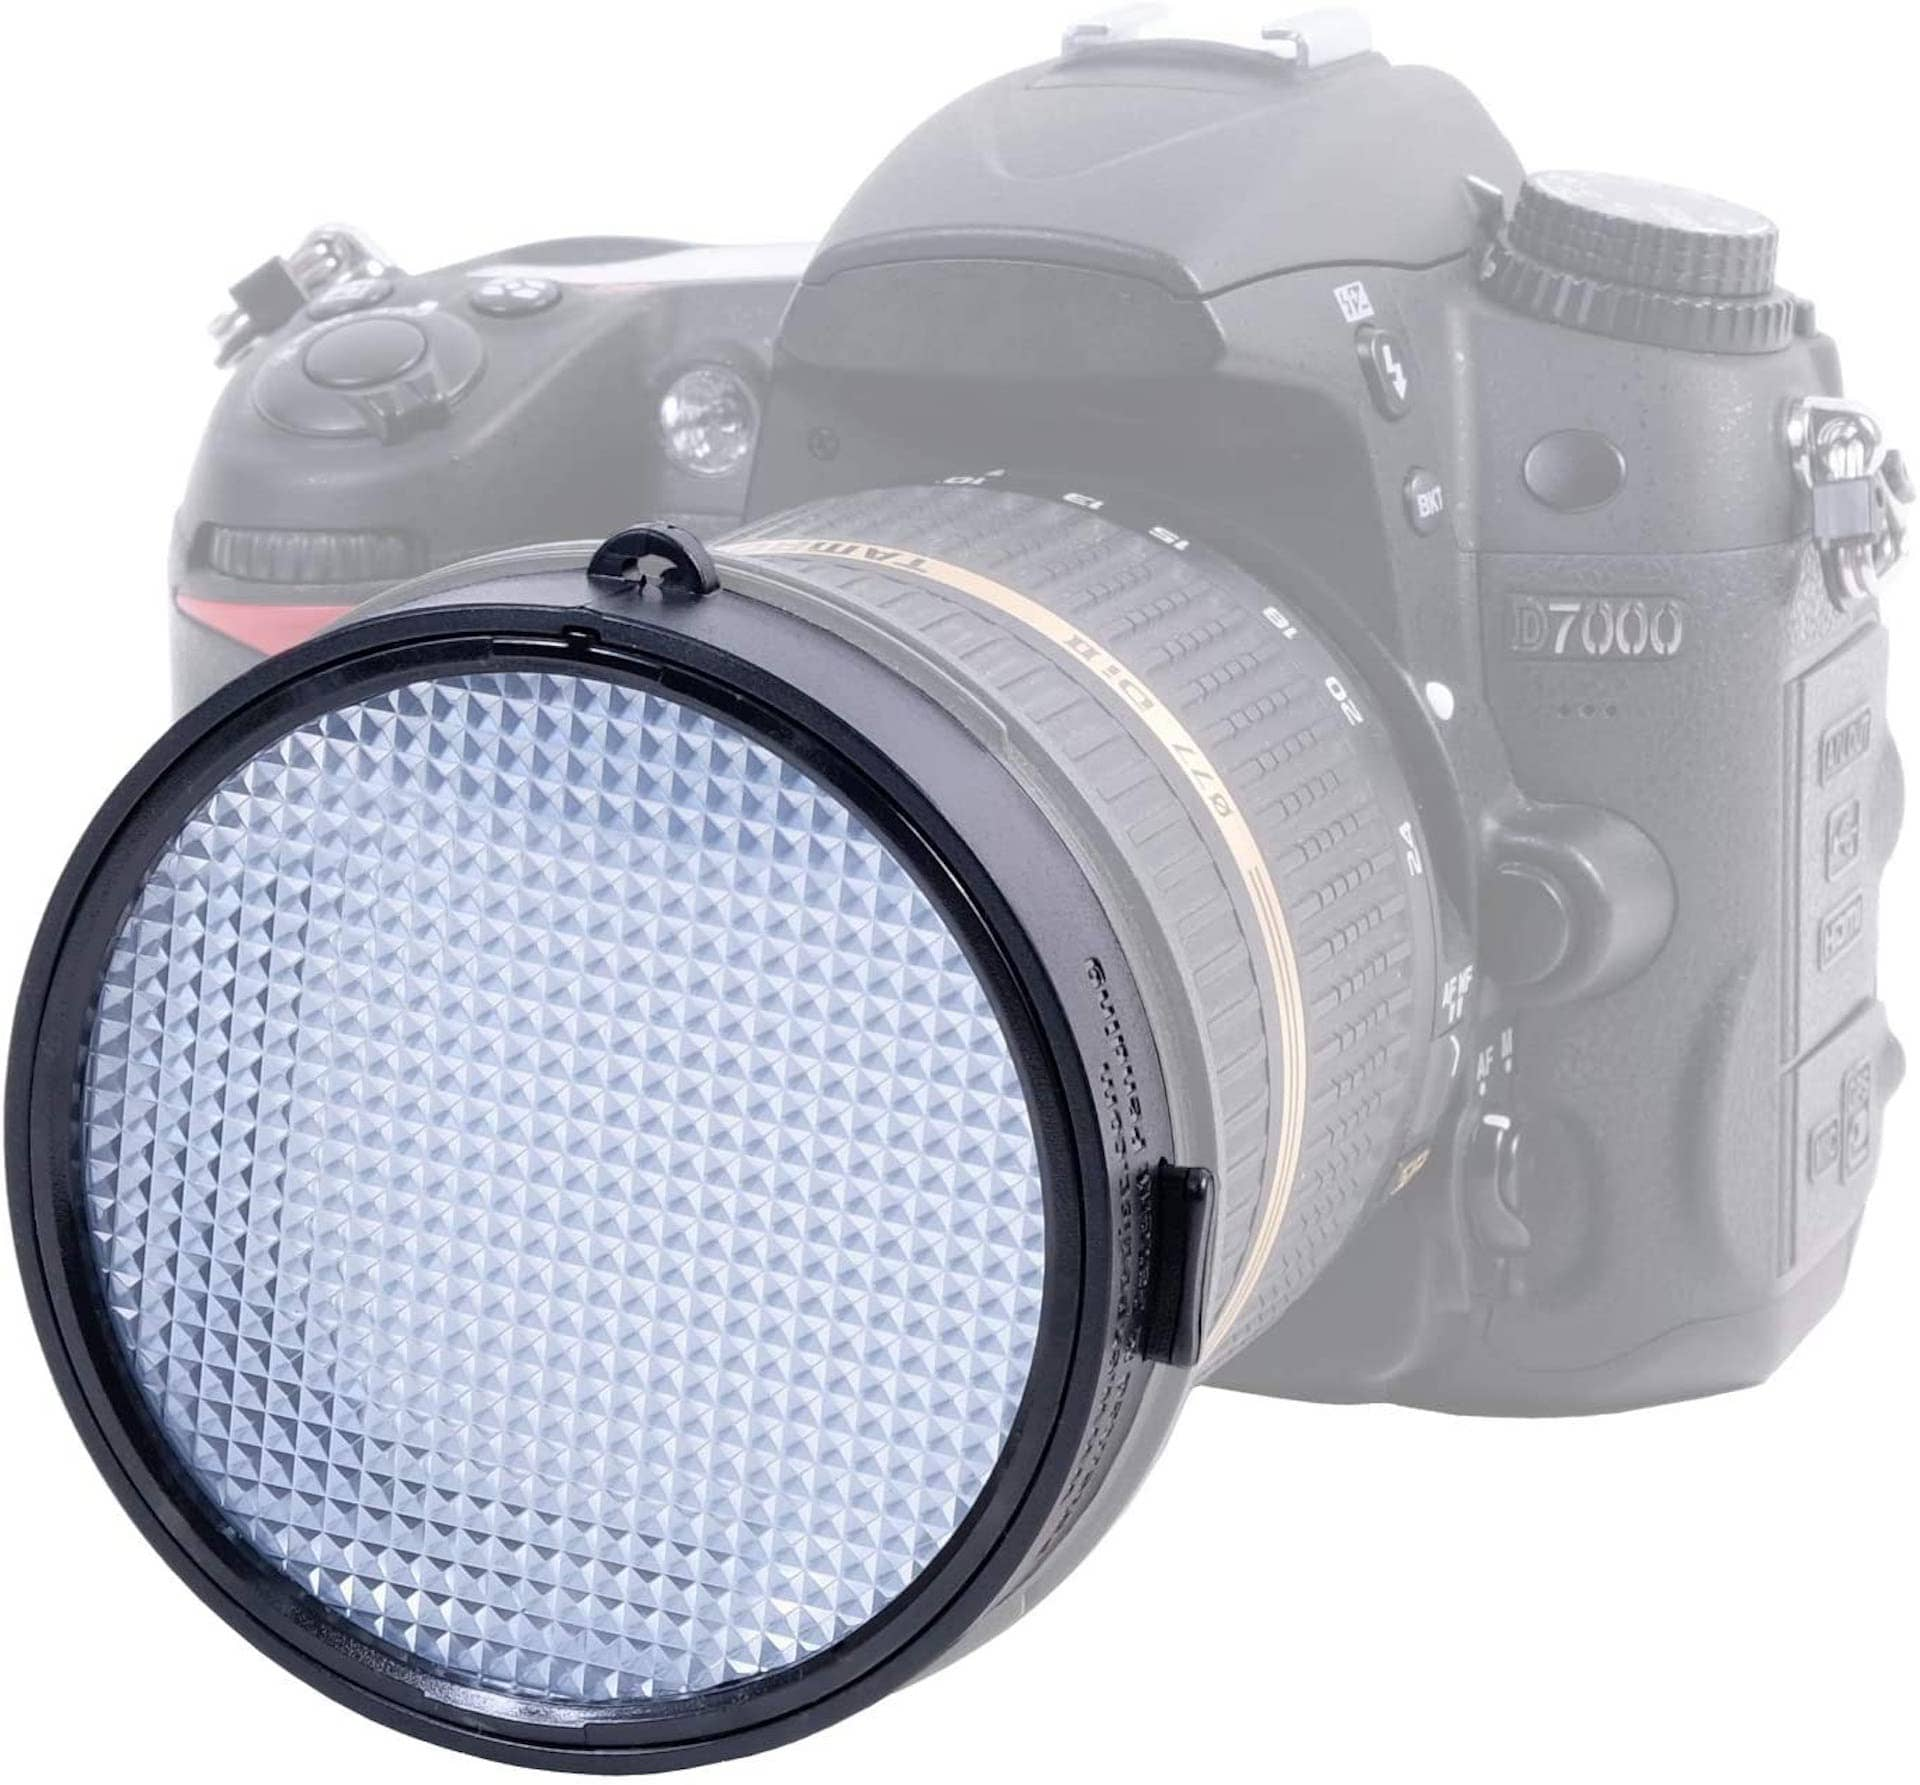 Best Photo Gifts for Photographers - Ideas Photographer Lovers - Lens Filter